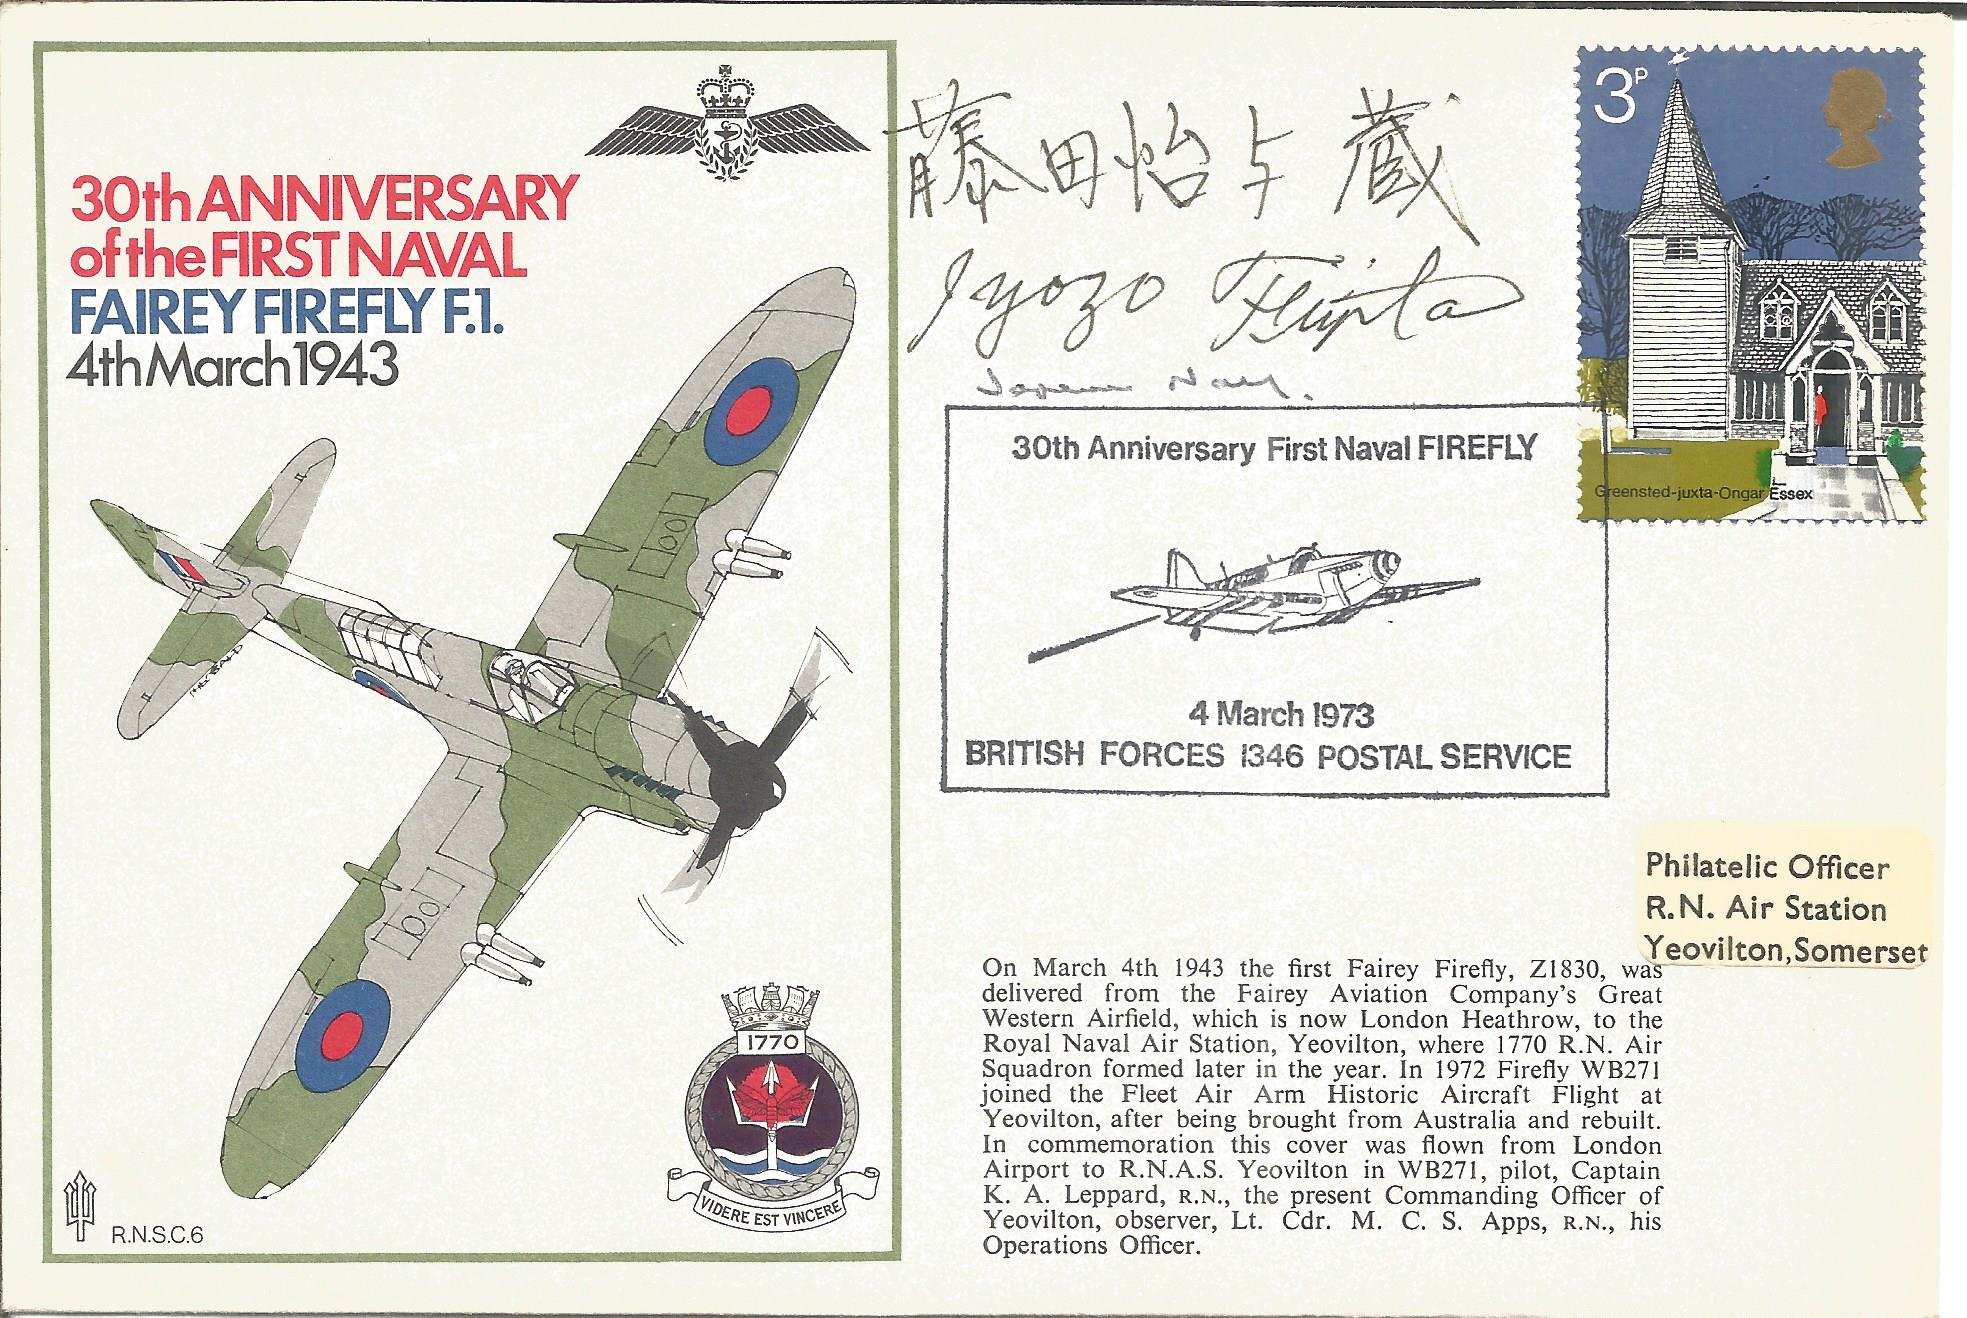 WW2 Japanese fighter ace Iyozo Fujita, Pearl Harbour 2 wave, signed Navy Firefly cover. Good